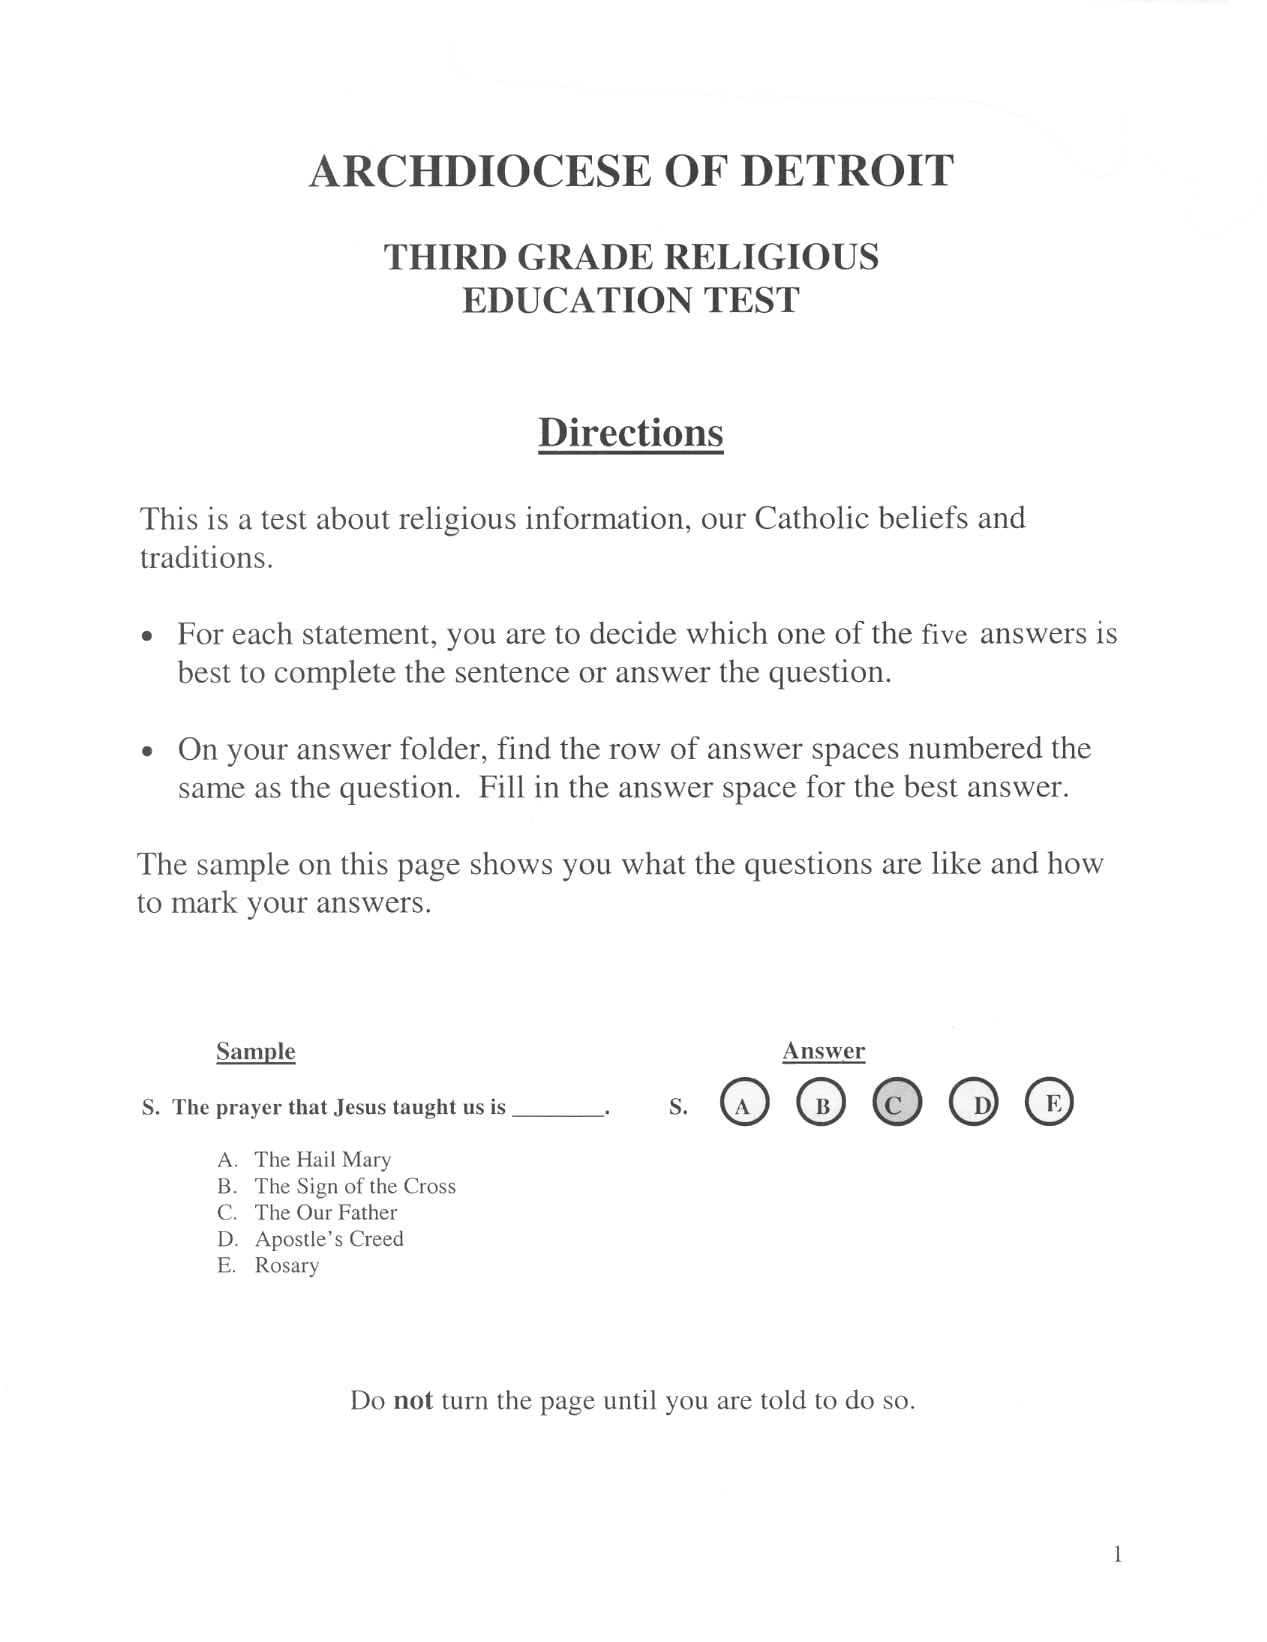 Religious Education Test - 3rd Grade